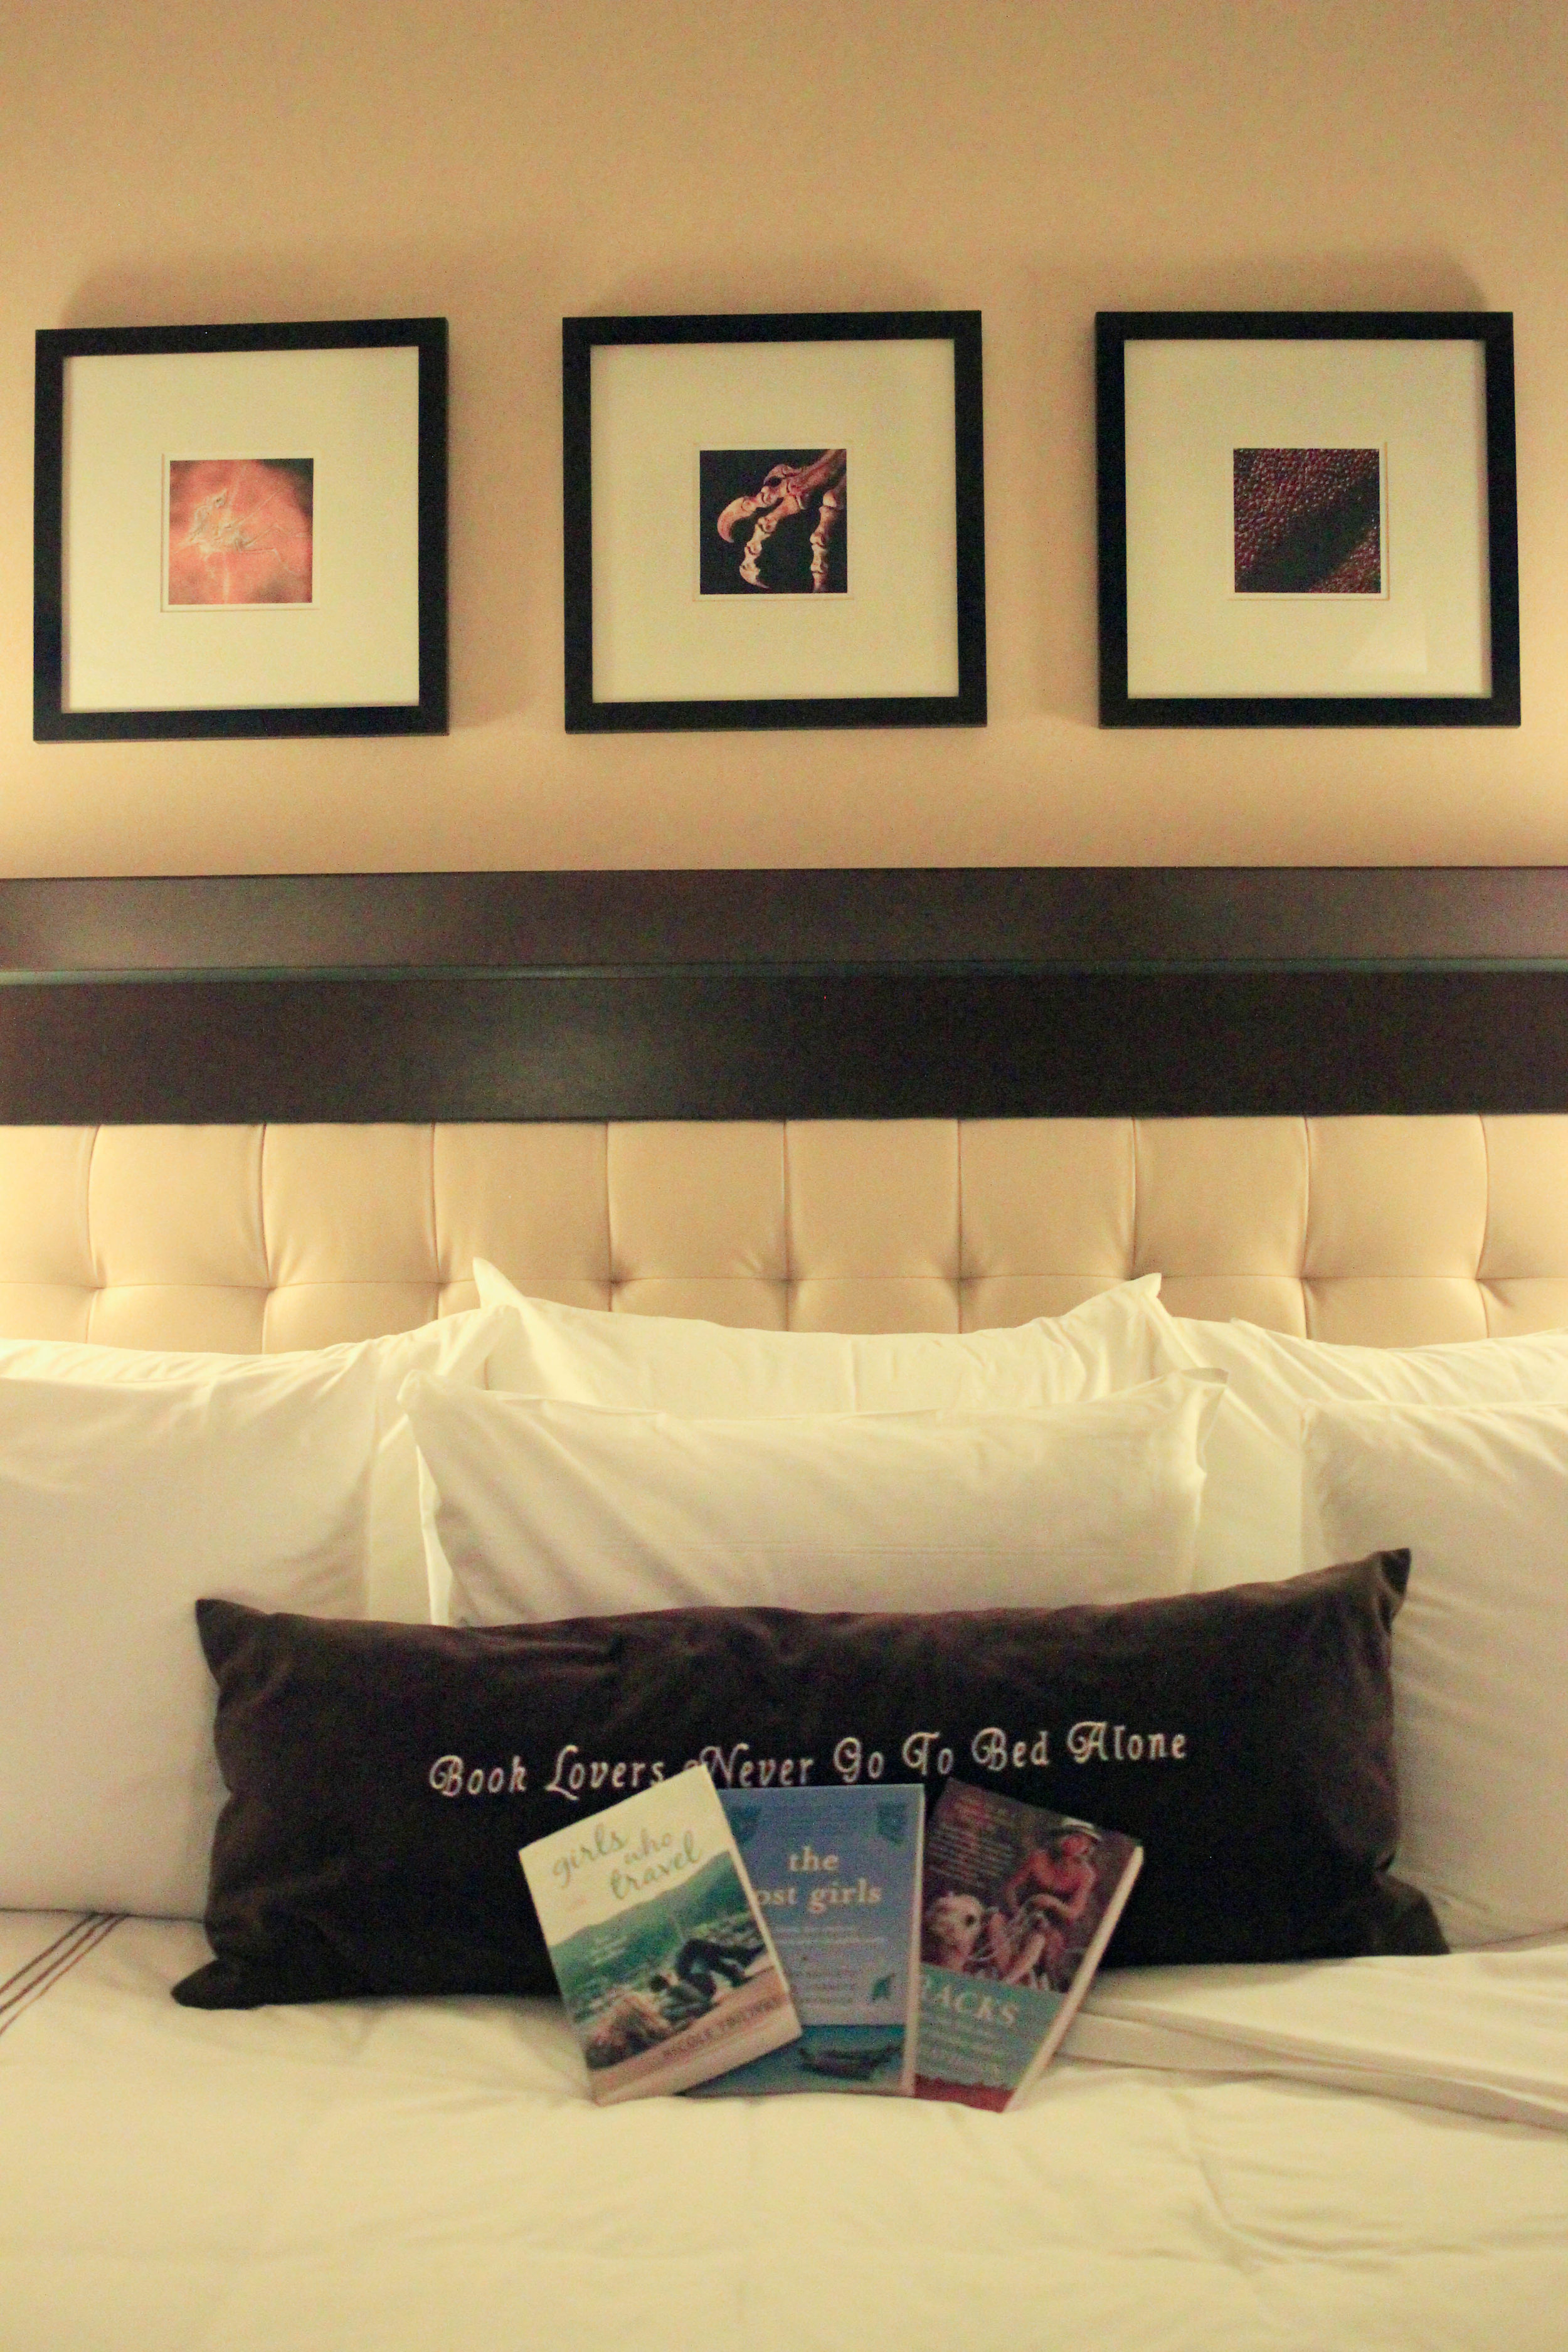 """The pillow reads """"Book lovers never go to bed alone."""" Above are framed photos of fossils line the wall."""